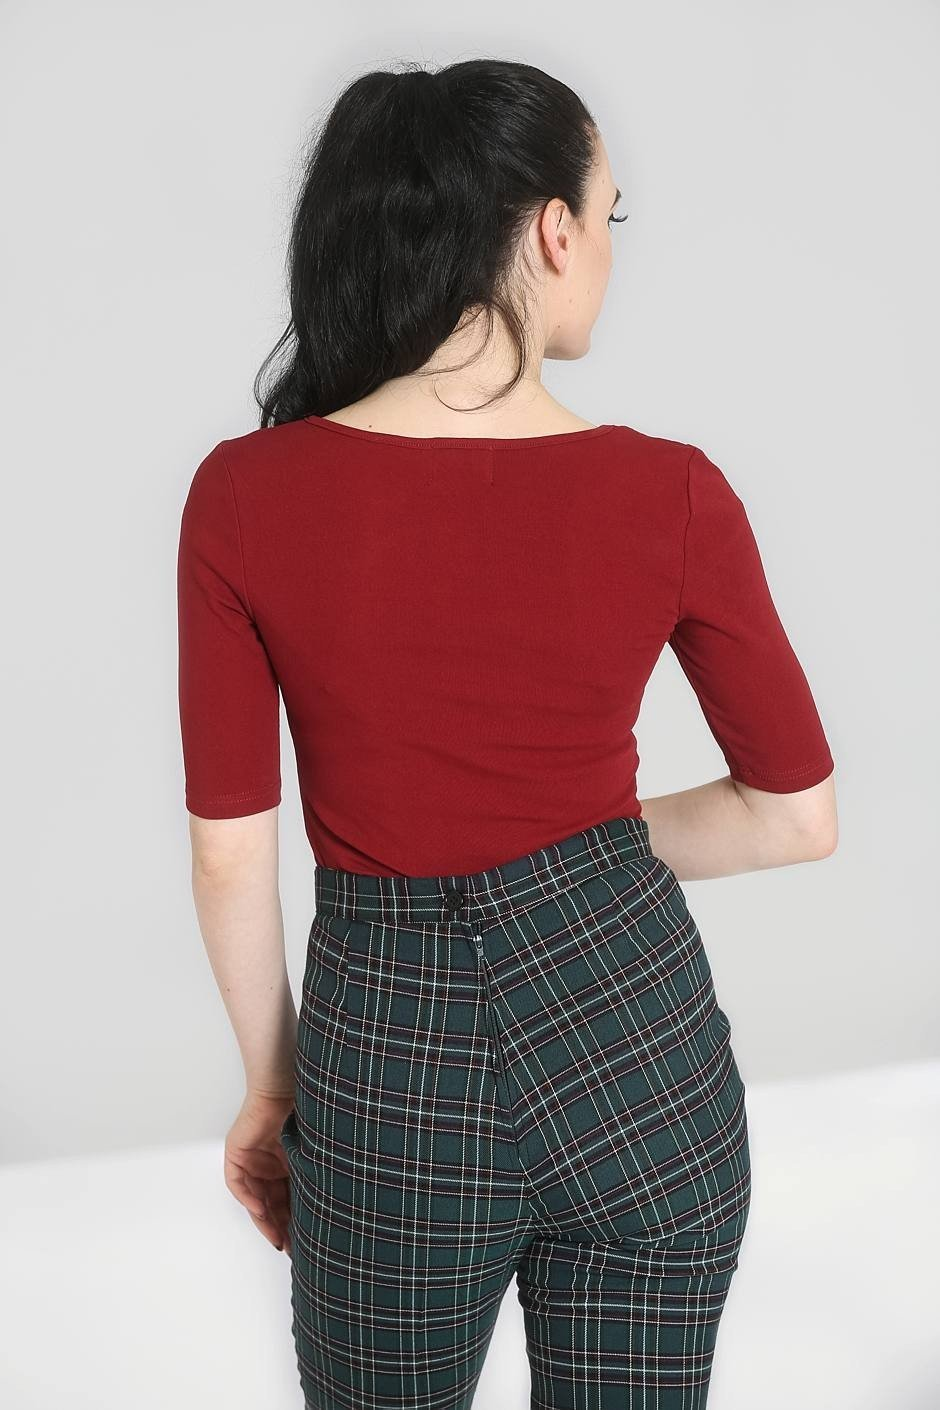 Hell Bunny Burgundy Philippa Top - Bohemian Finds